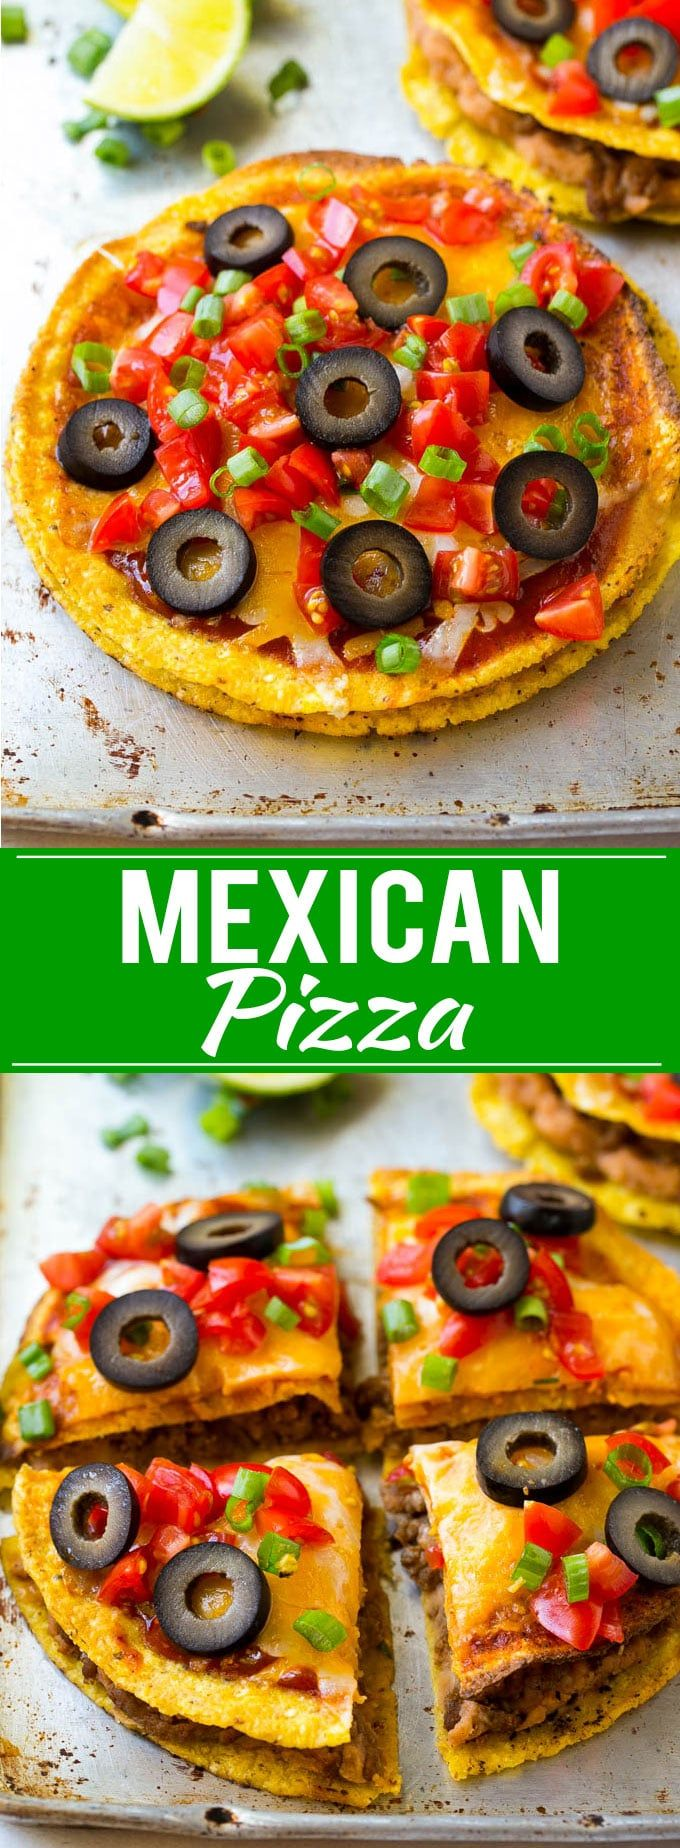 Mexican Pizza Recipe | Tostada Recipe | Taco Bell Copycat Recipe | Easy Mexican Food